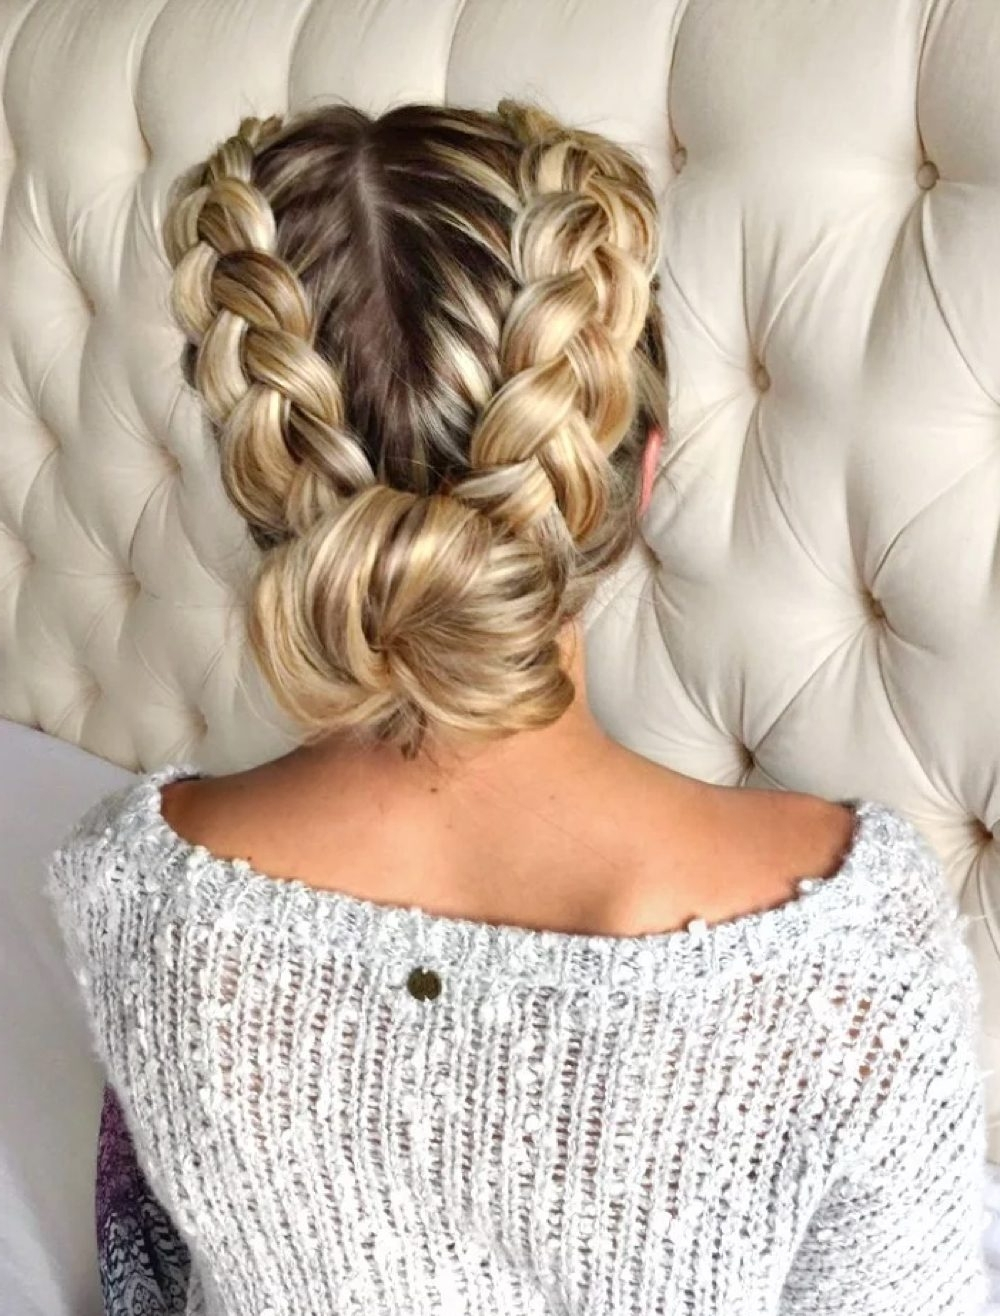 Latest Reverse Braid And Side Ponytail Regarding 28 Gorgeous Braided Updo Ideas For (View 14 of 15)